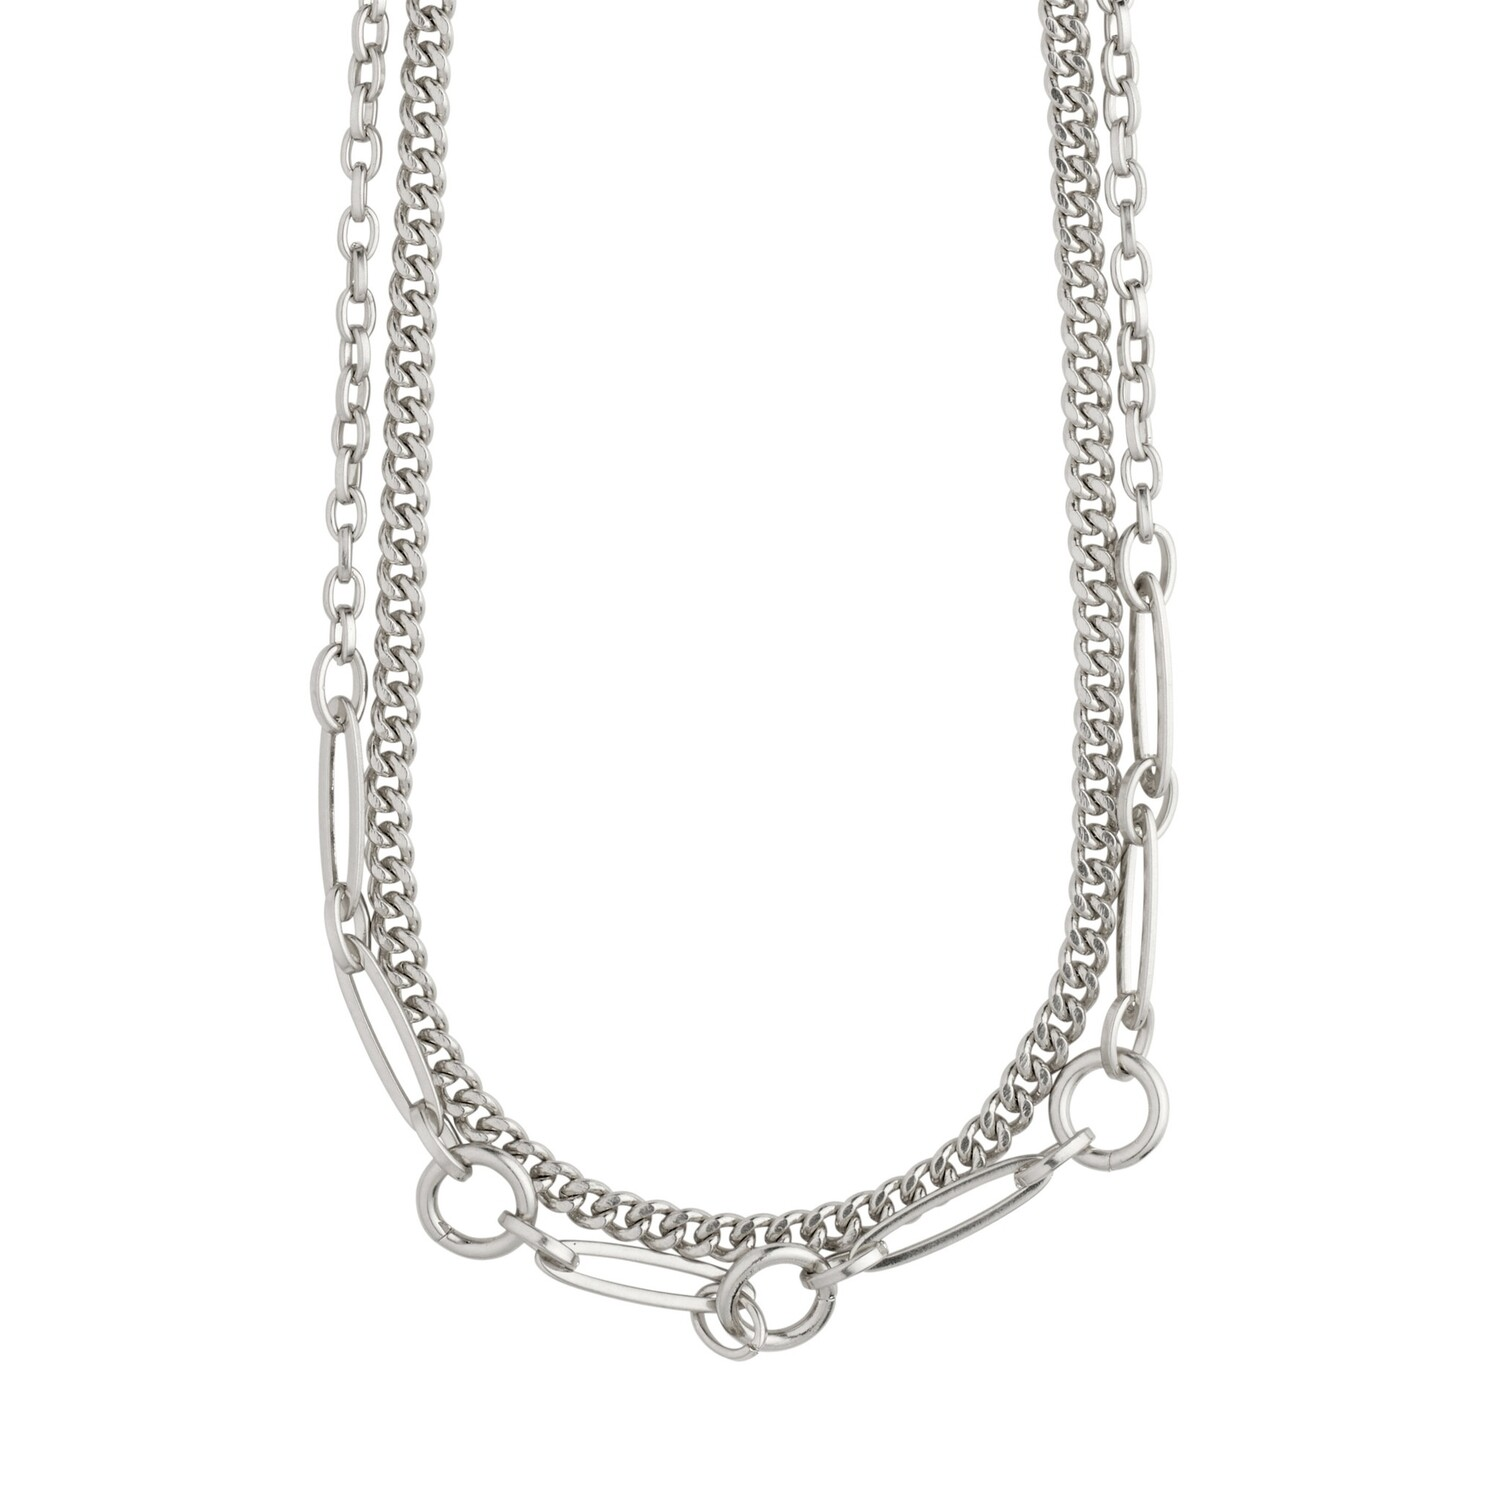 Pilgrim Silver Sensitivity 2-in-1 Chain Necklace